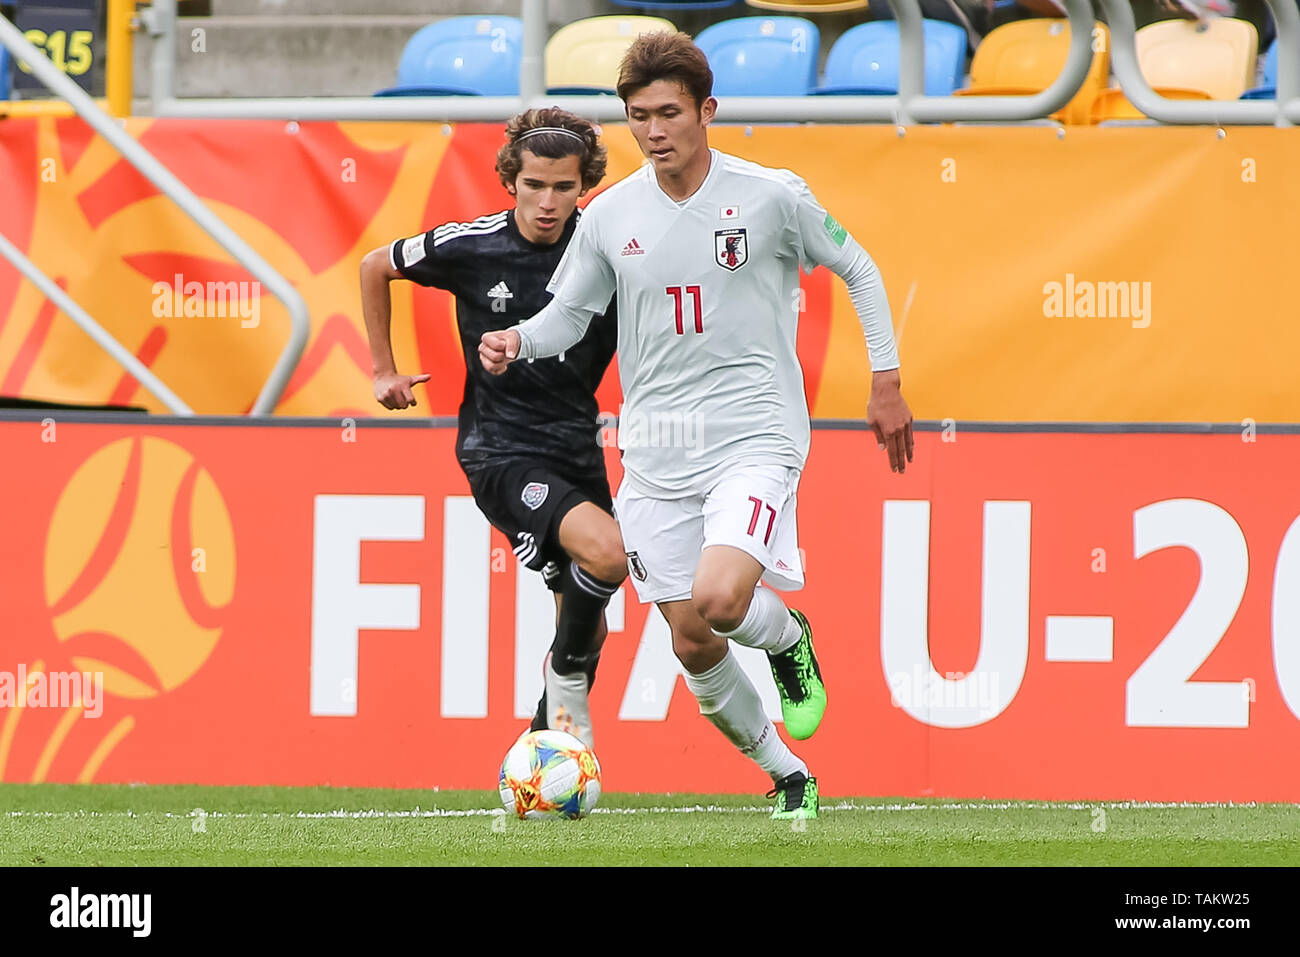 Gdynia Stadium, Gdynia, Poland - 26th May, 2019: Antonio Figueroa from Mexico and Kyosuke Tagawa from Japan are seen in action during FIFA U-20 World Cup match between Mexico and Japan (GROUP B) in Gdynia. (Final score; Mexico 0:3 Japan) - Stock Image